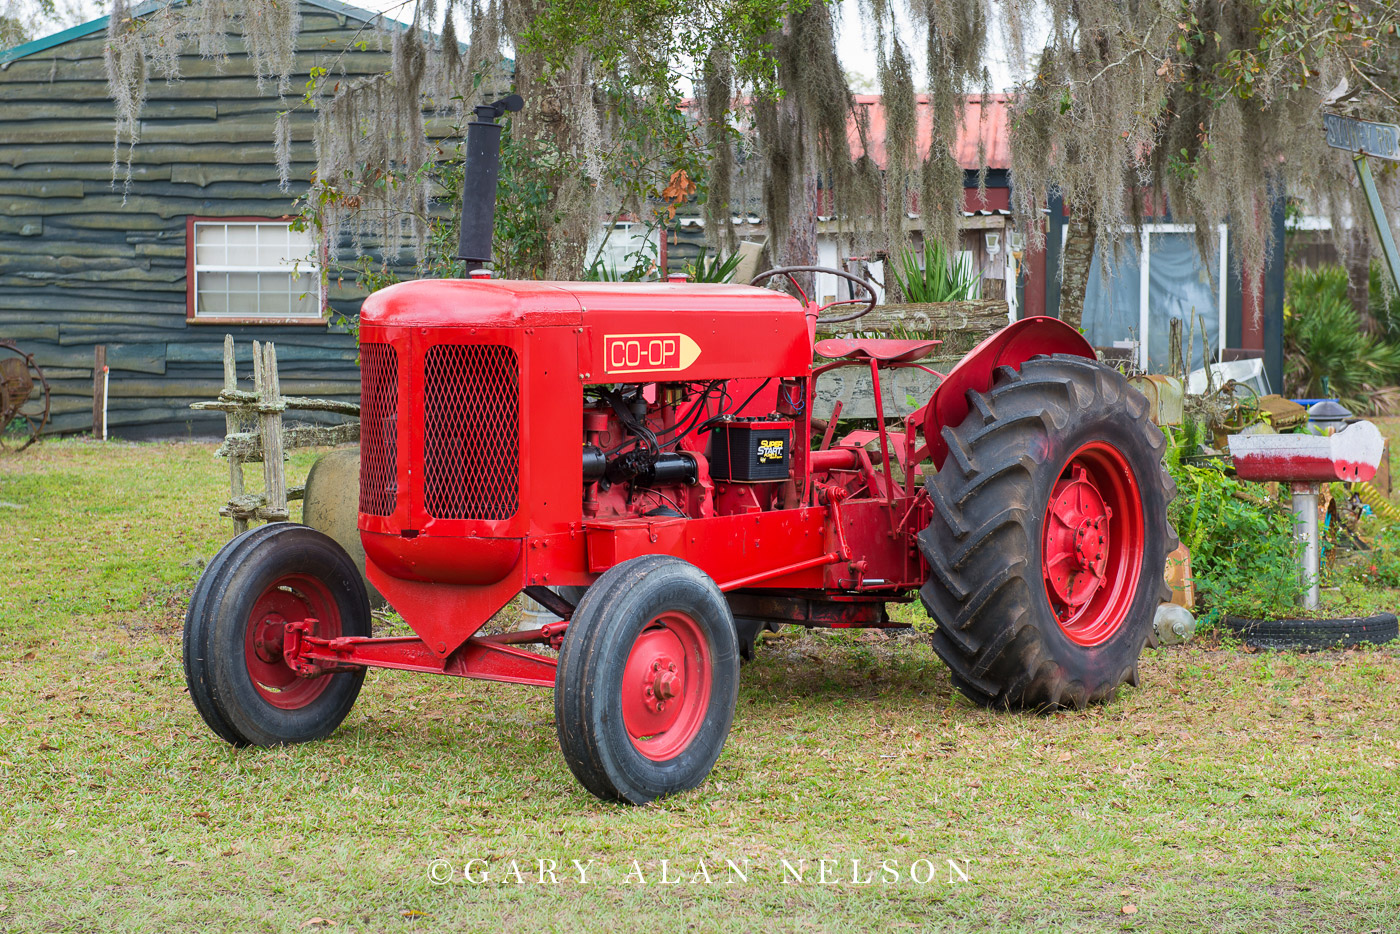 antique tractor, vintage tractor, Co-Op, photo